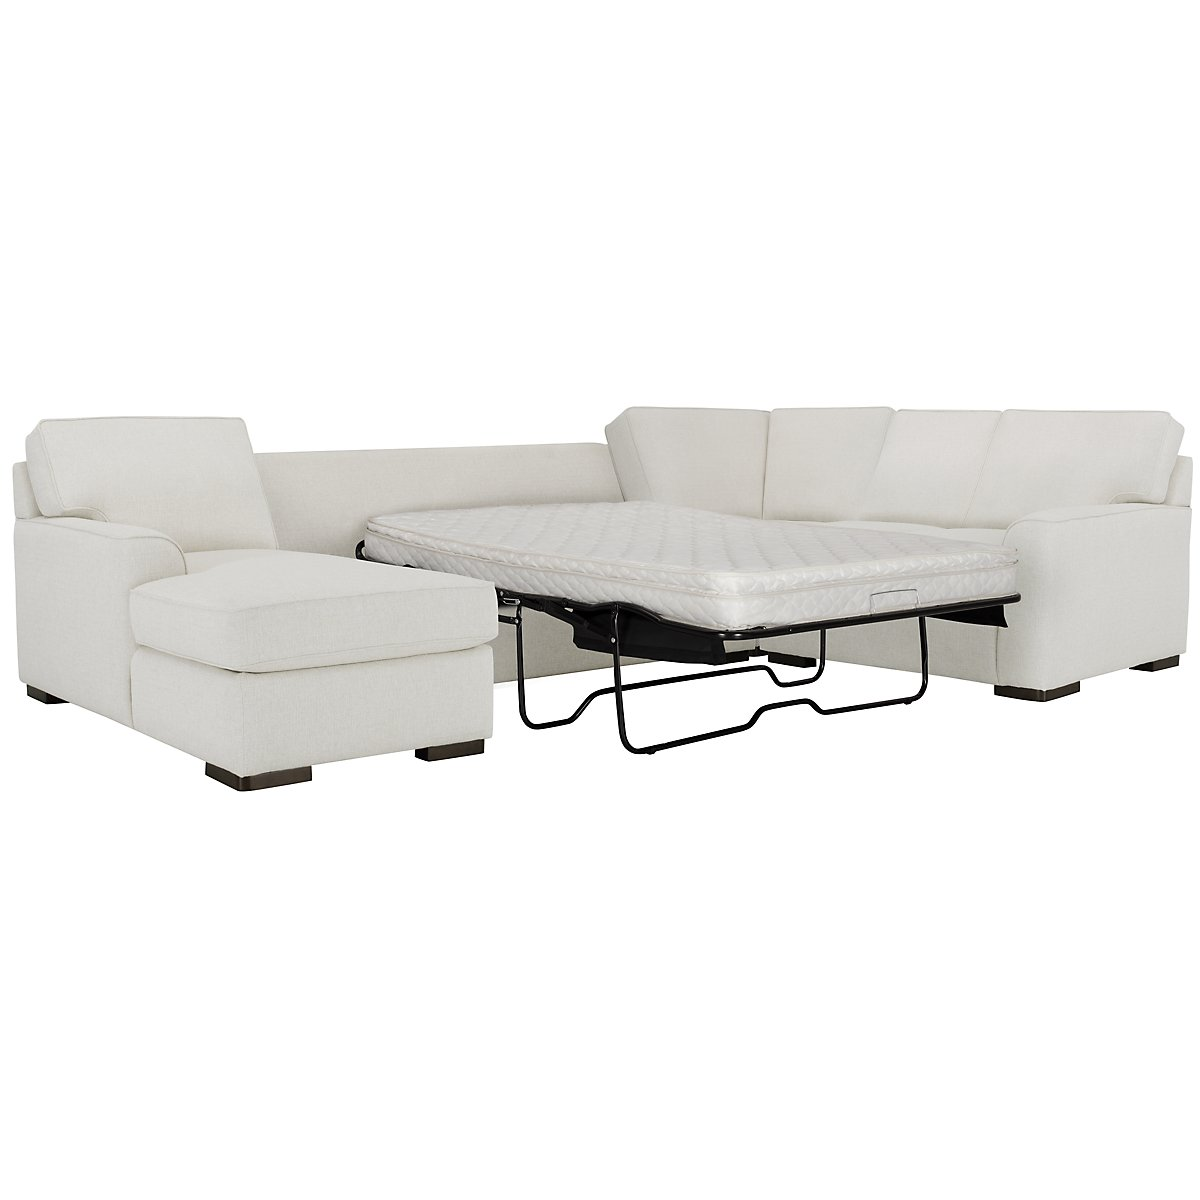 Austin White Fabric Left Chaise Innerspring Sleeper Sectional